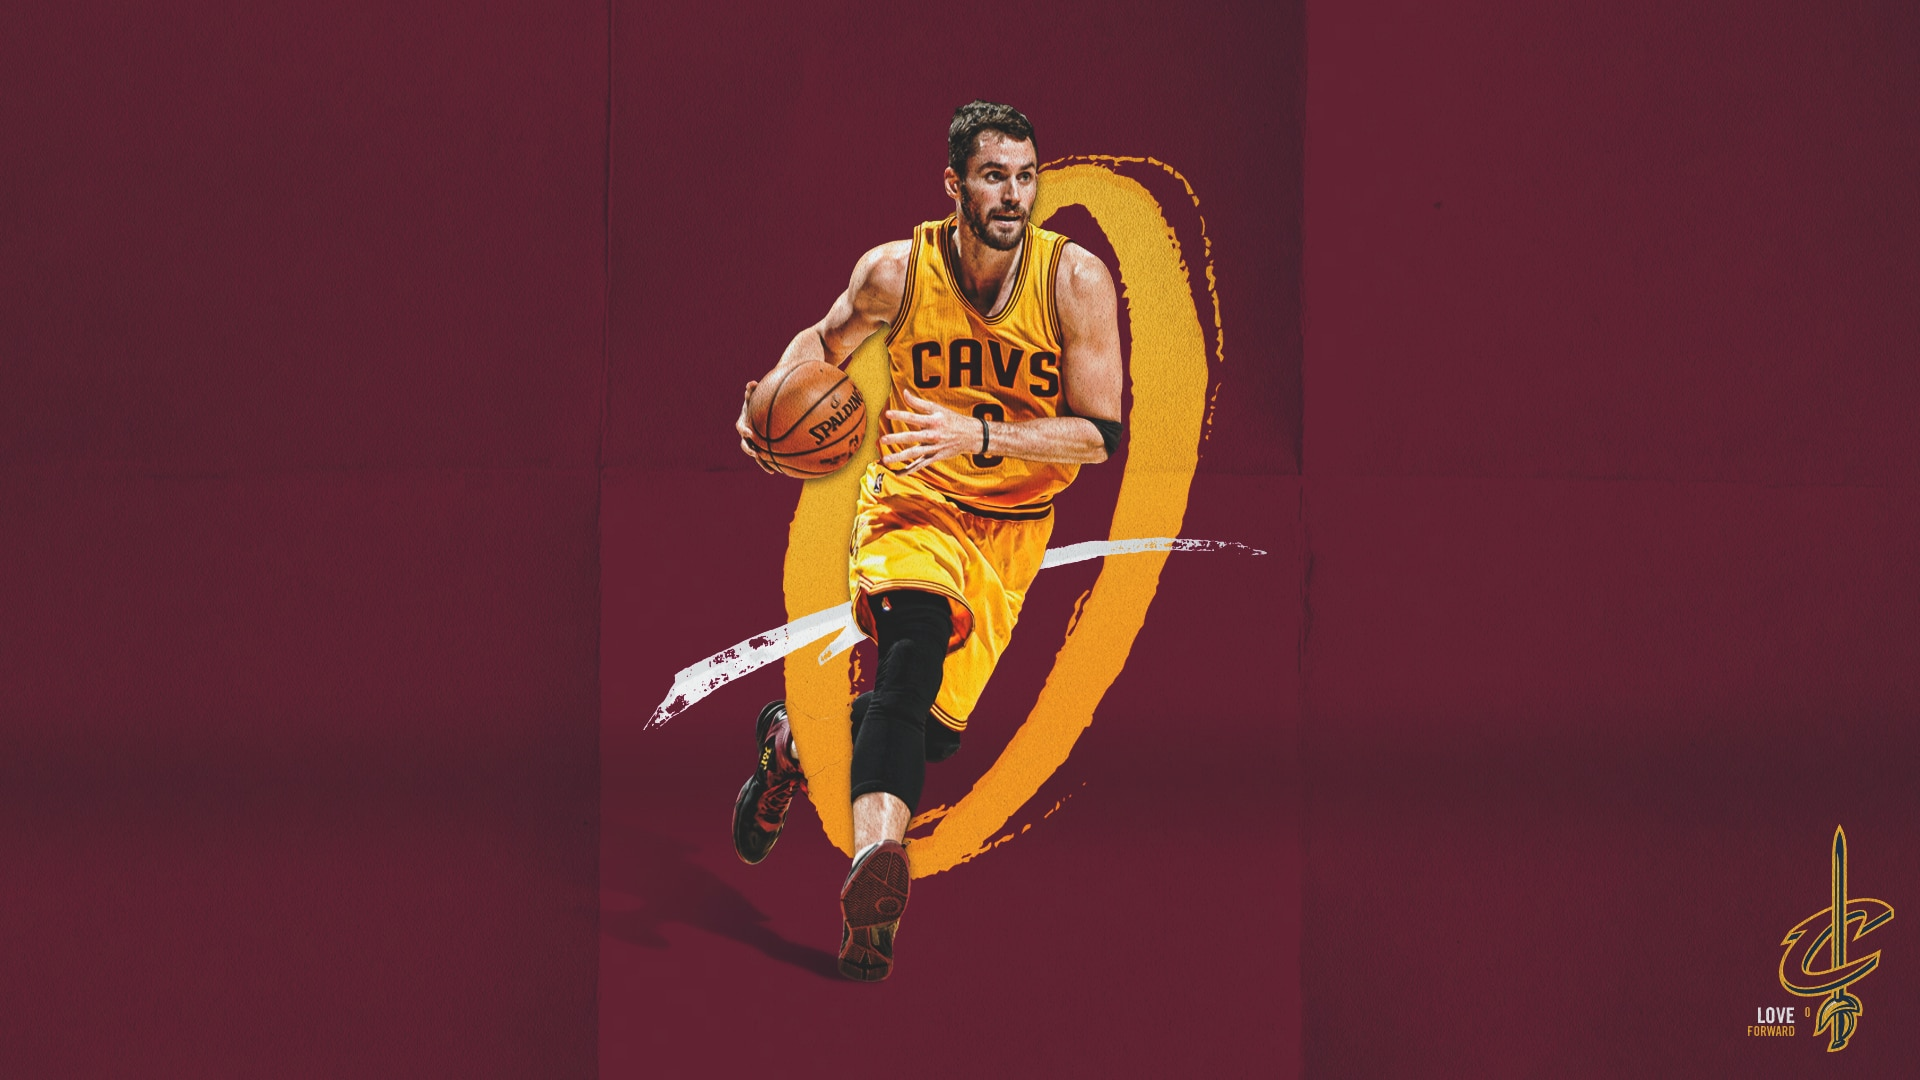 Lebron James Animated Wallpaper Wallpapers Cleveland Cavaliers